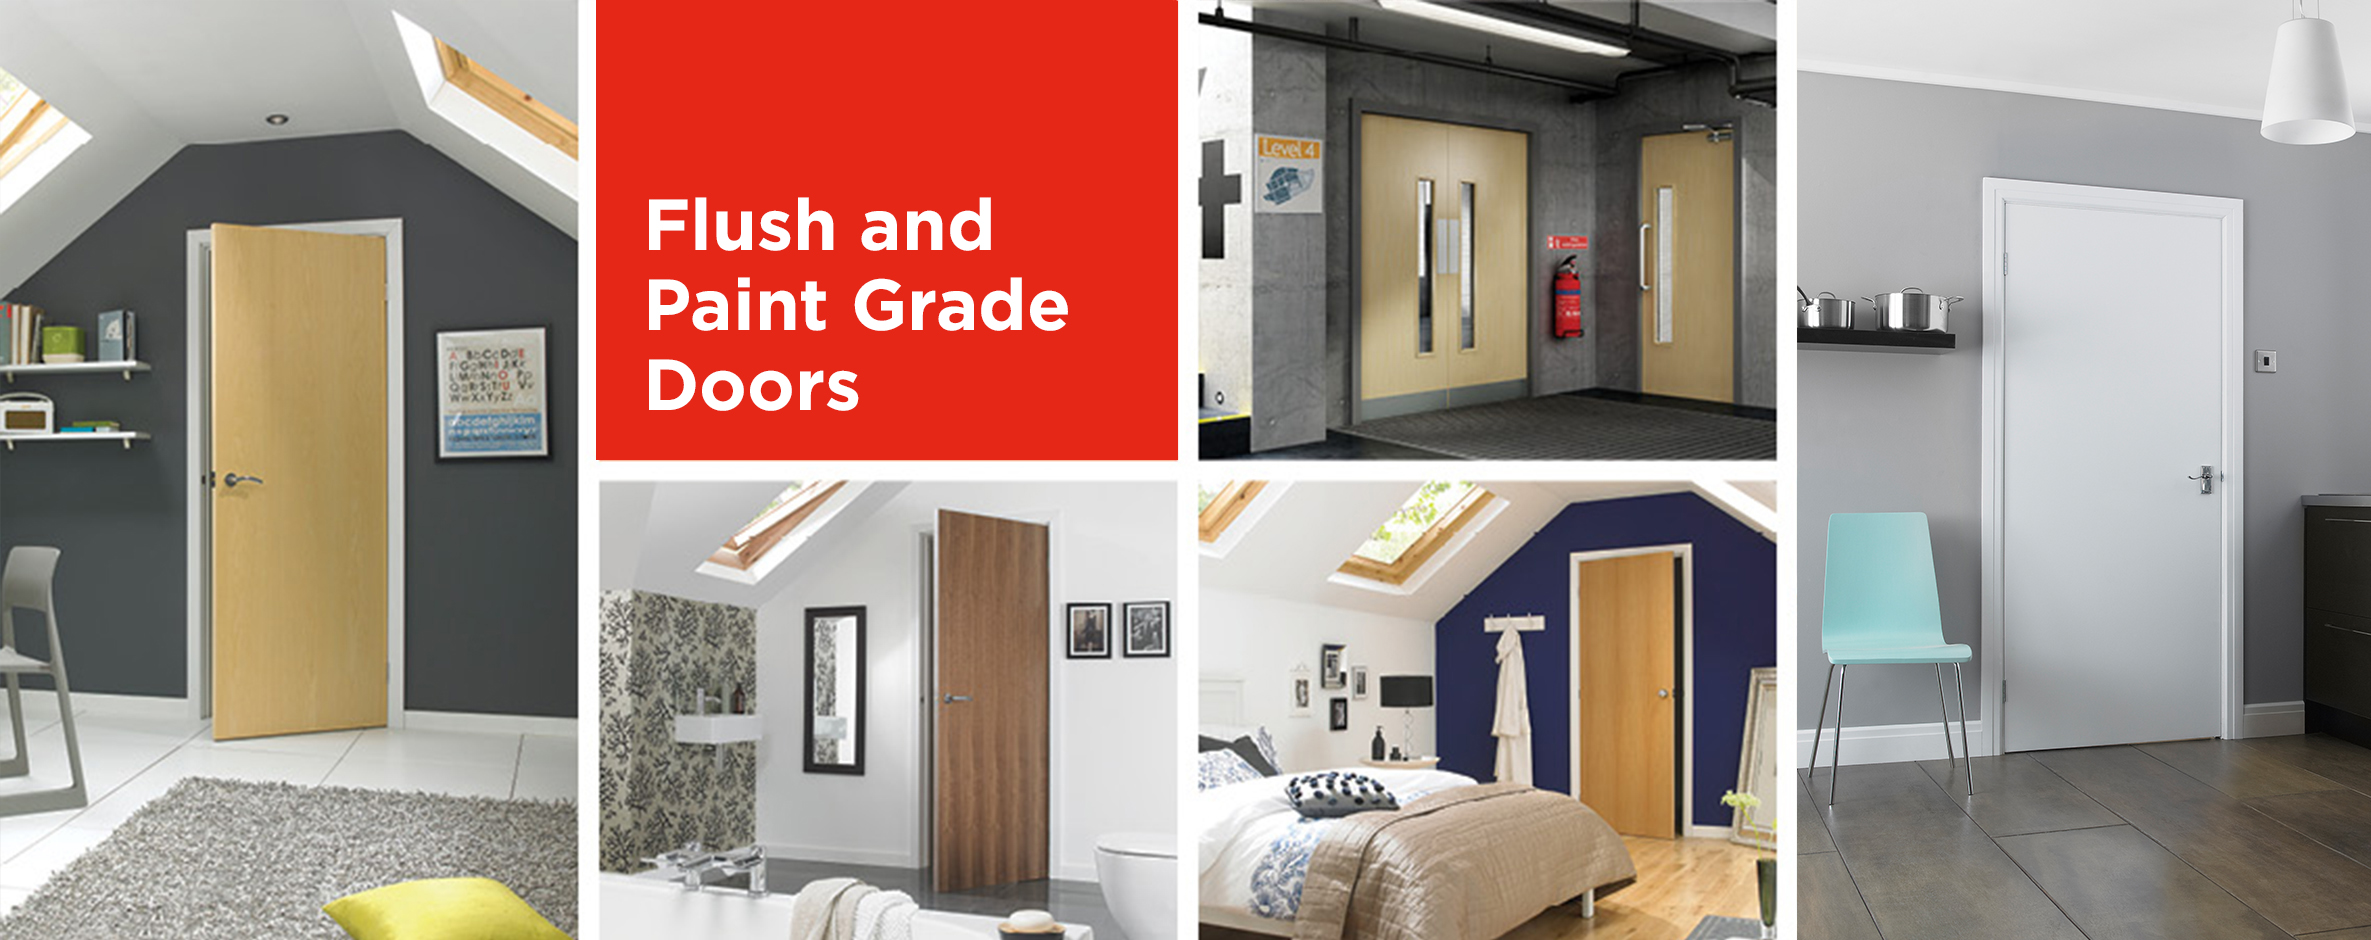 Flush and Paint Grade Doors